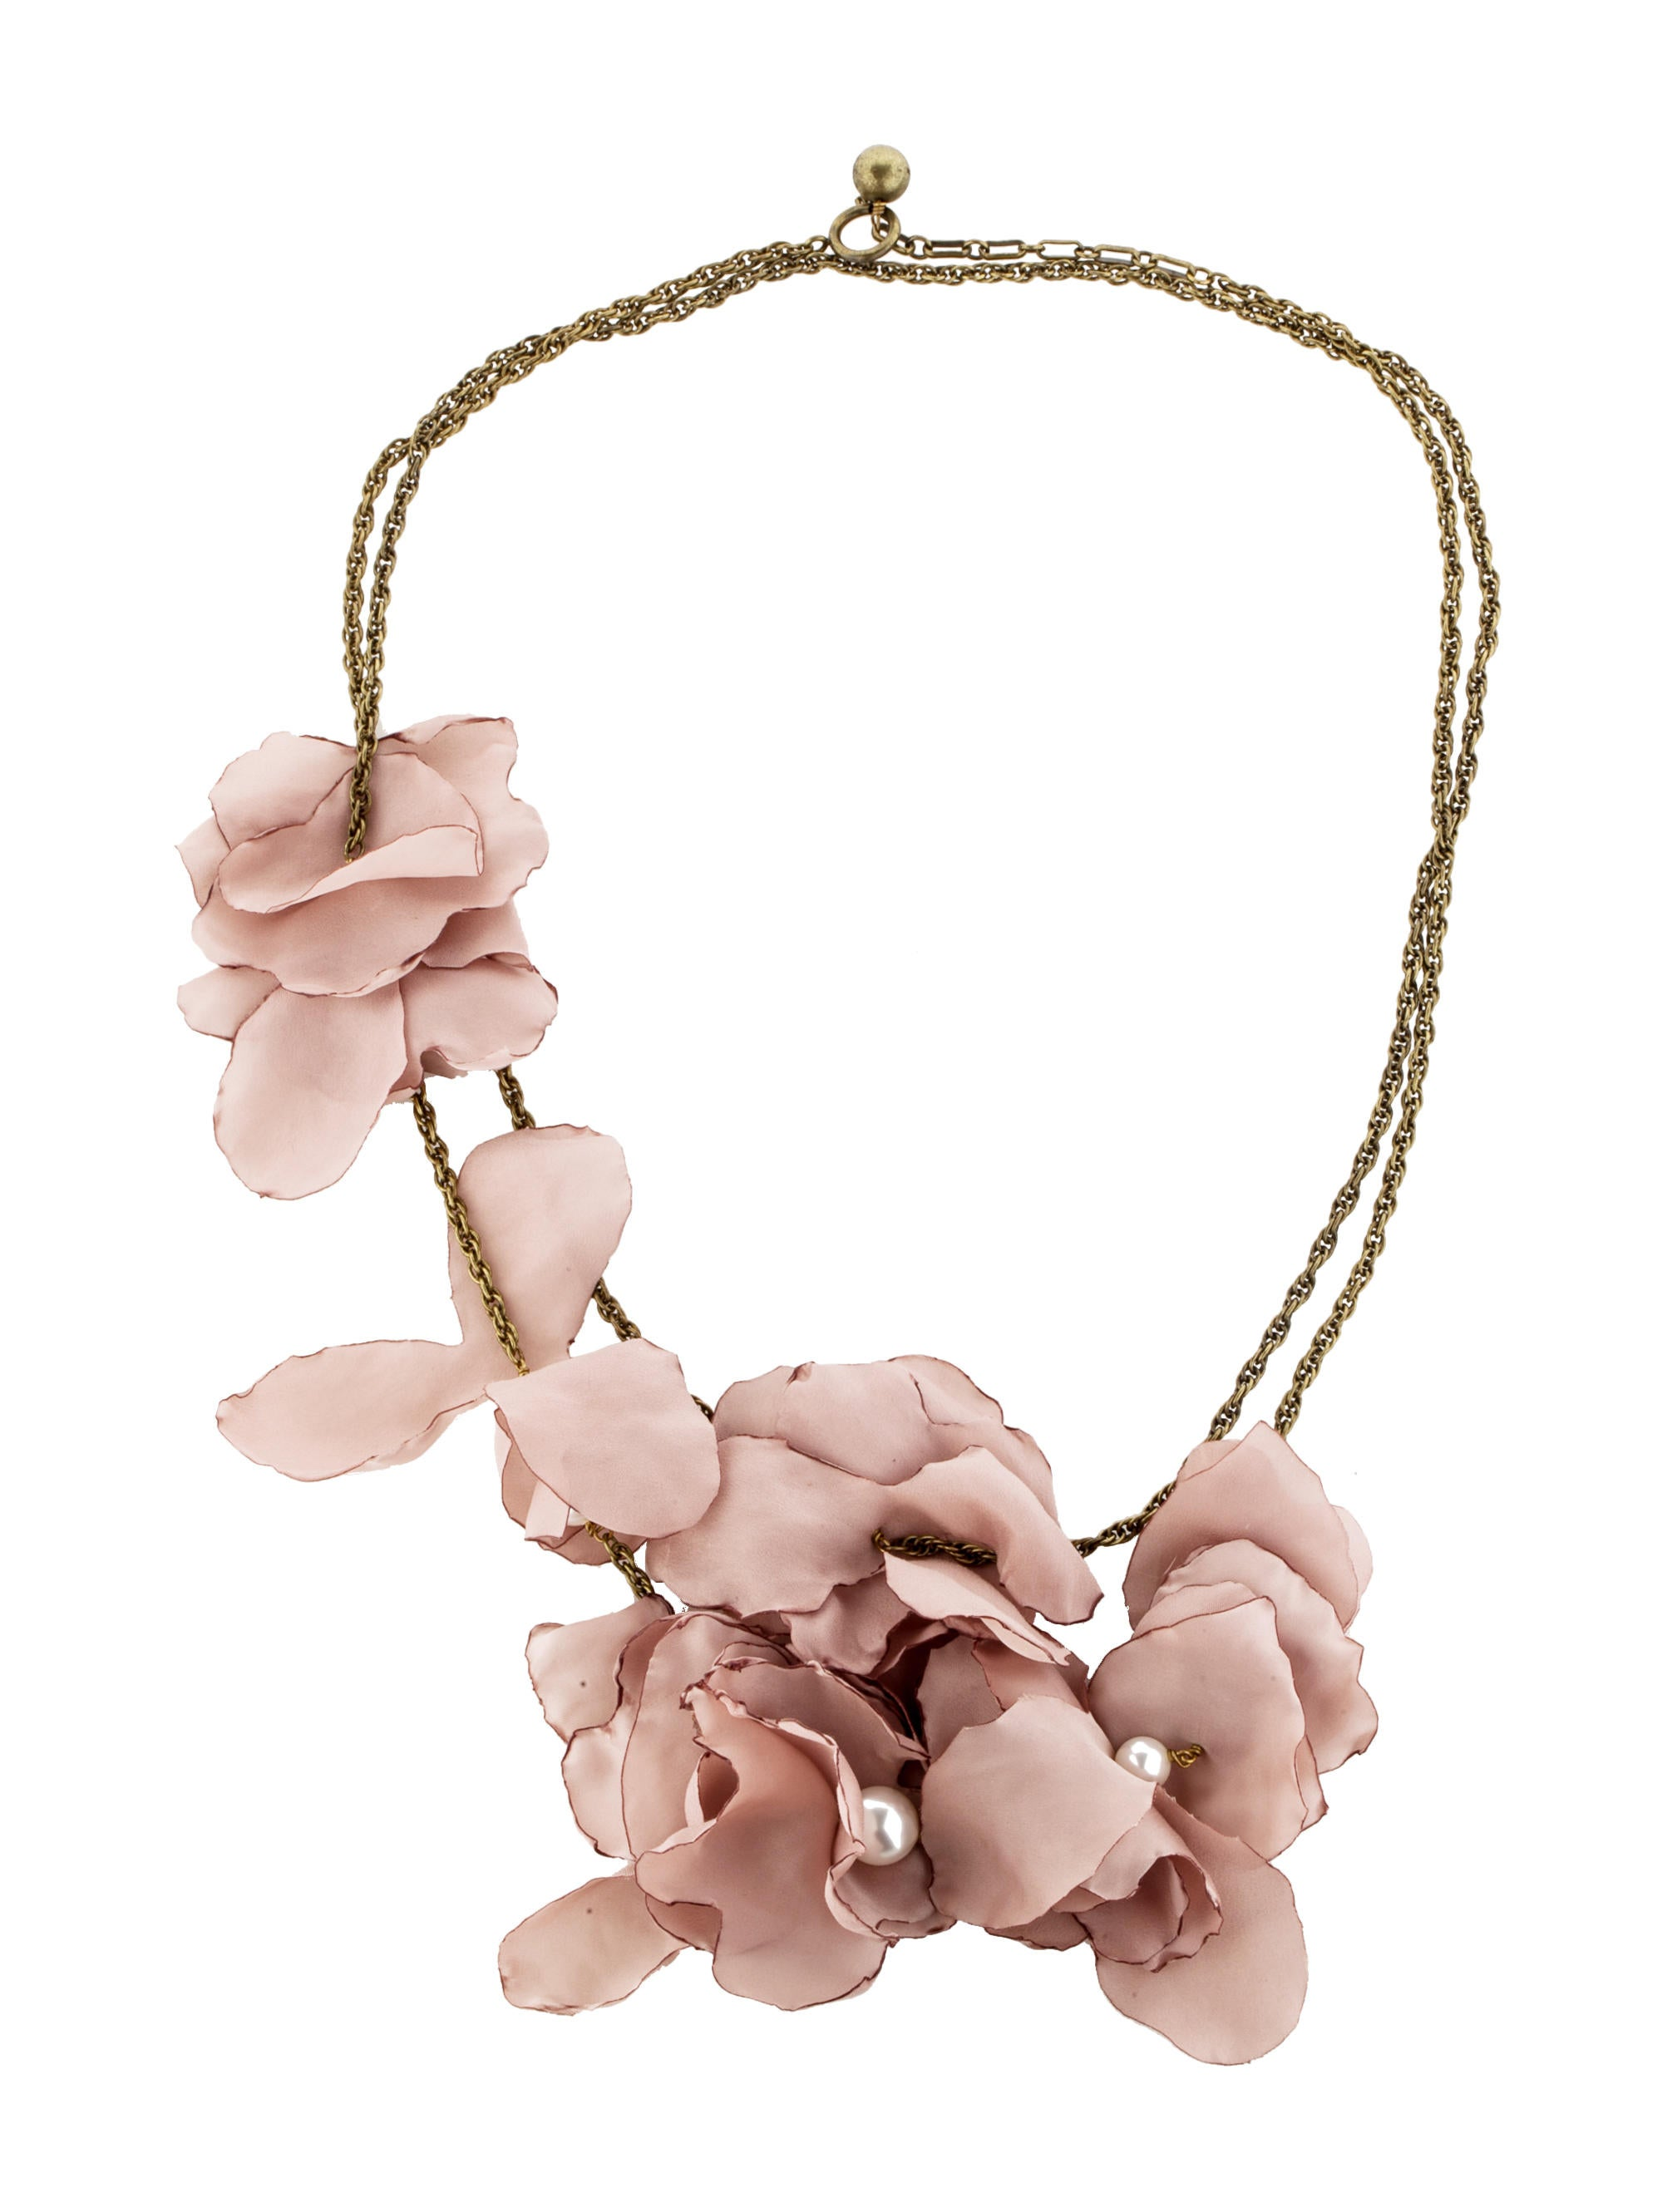 Lanvin Silk Flower Necklace Necklaces Lan27794 The Realreal